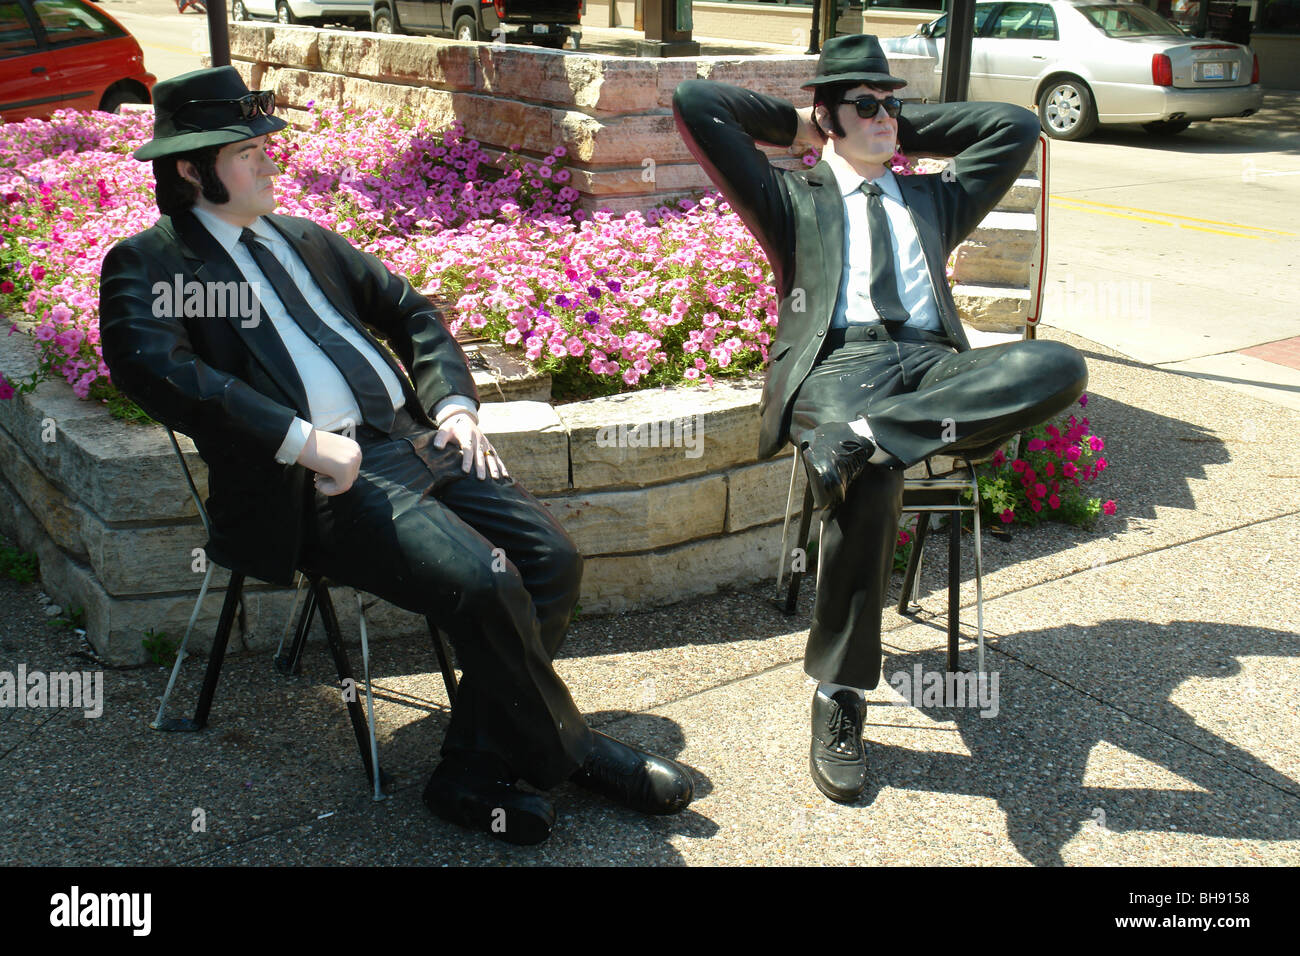 AJD65034, Rock Island, IL, Illinois, The Blues Brothers Statues, Downtown - Stock Image